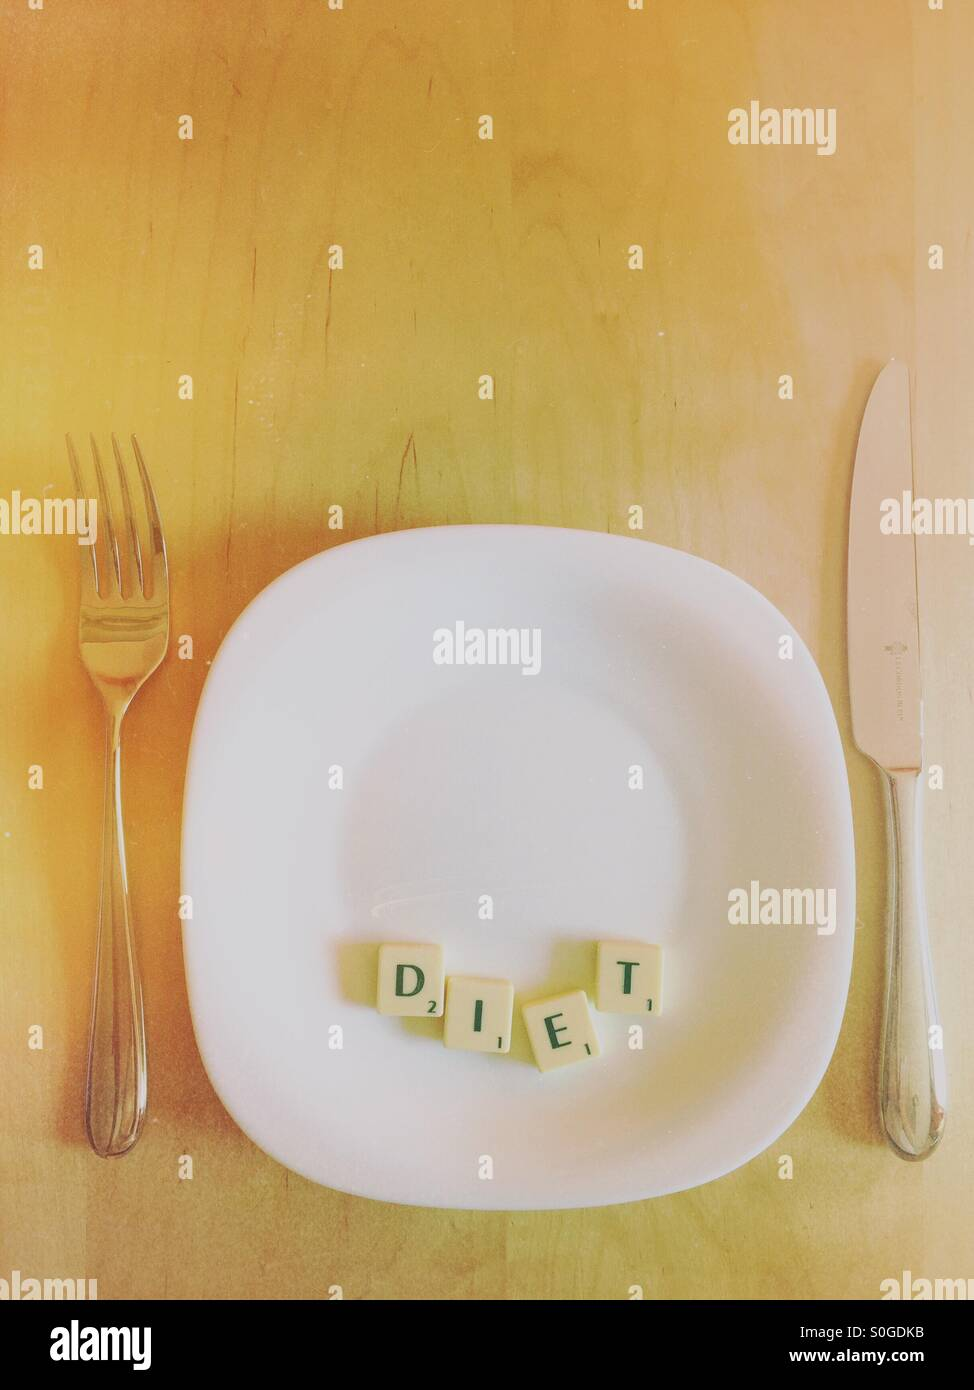 Plate with the word DIET in scrabble letters - Stock Image